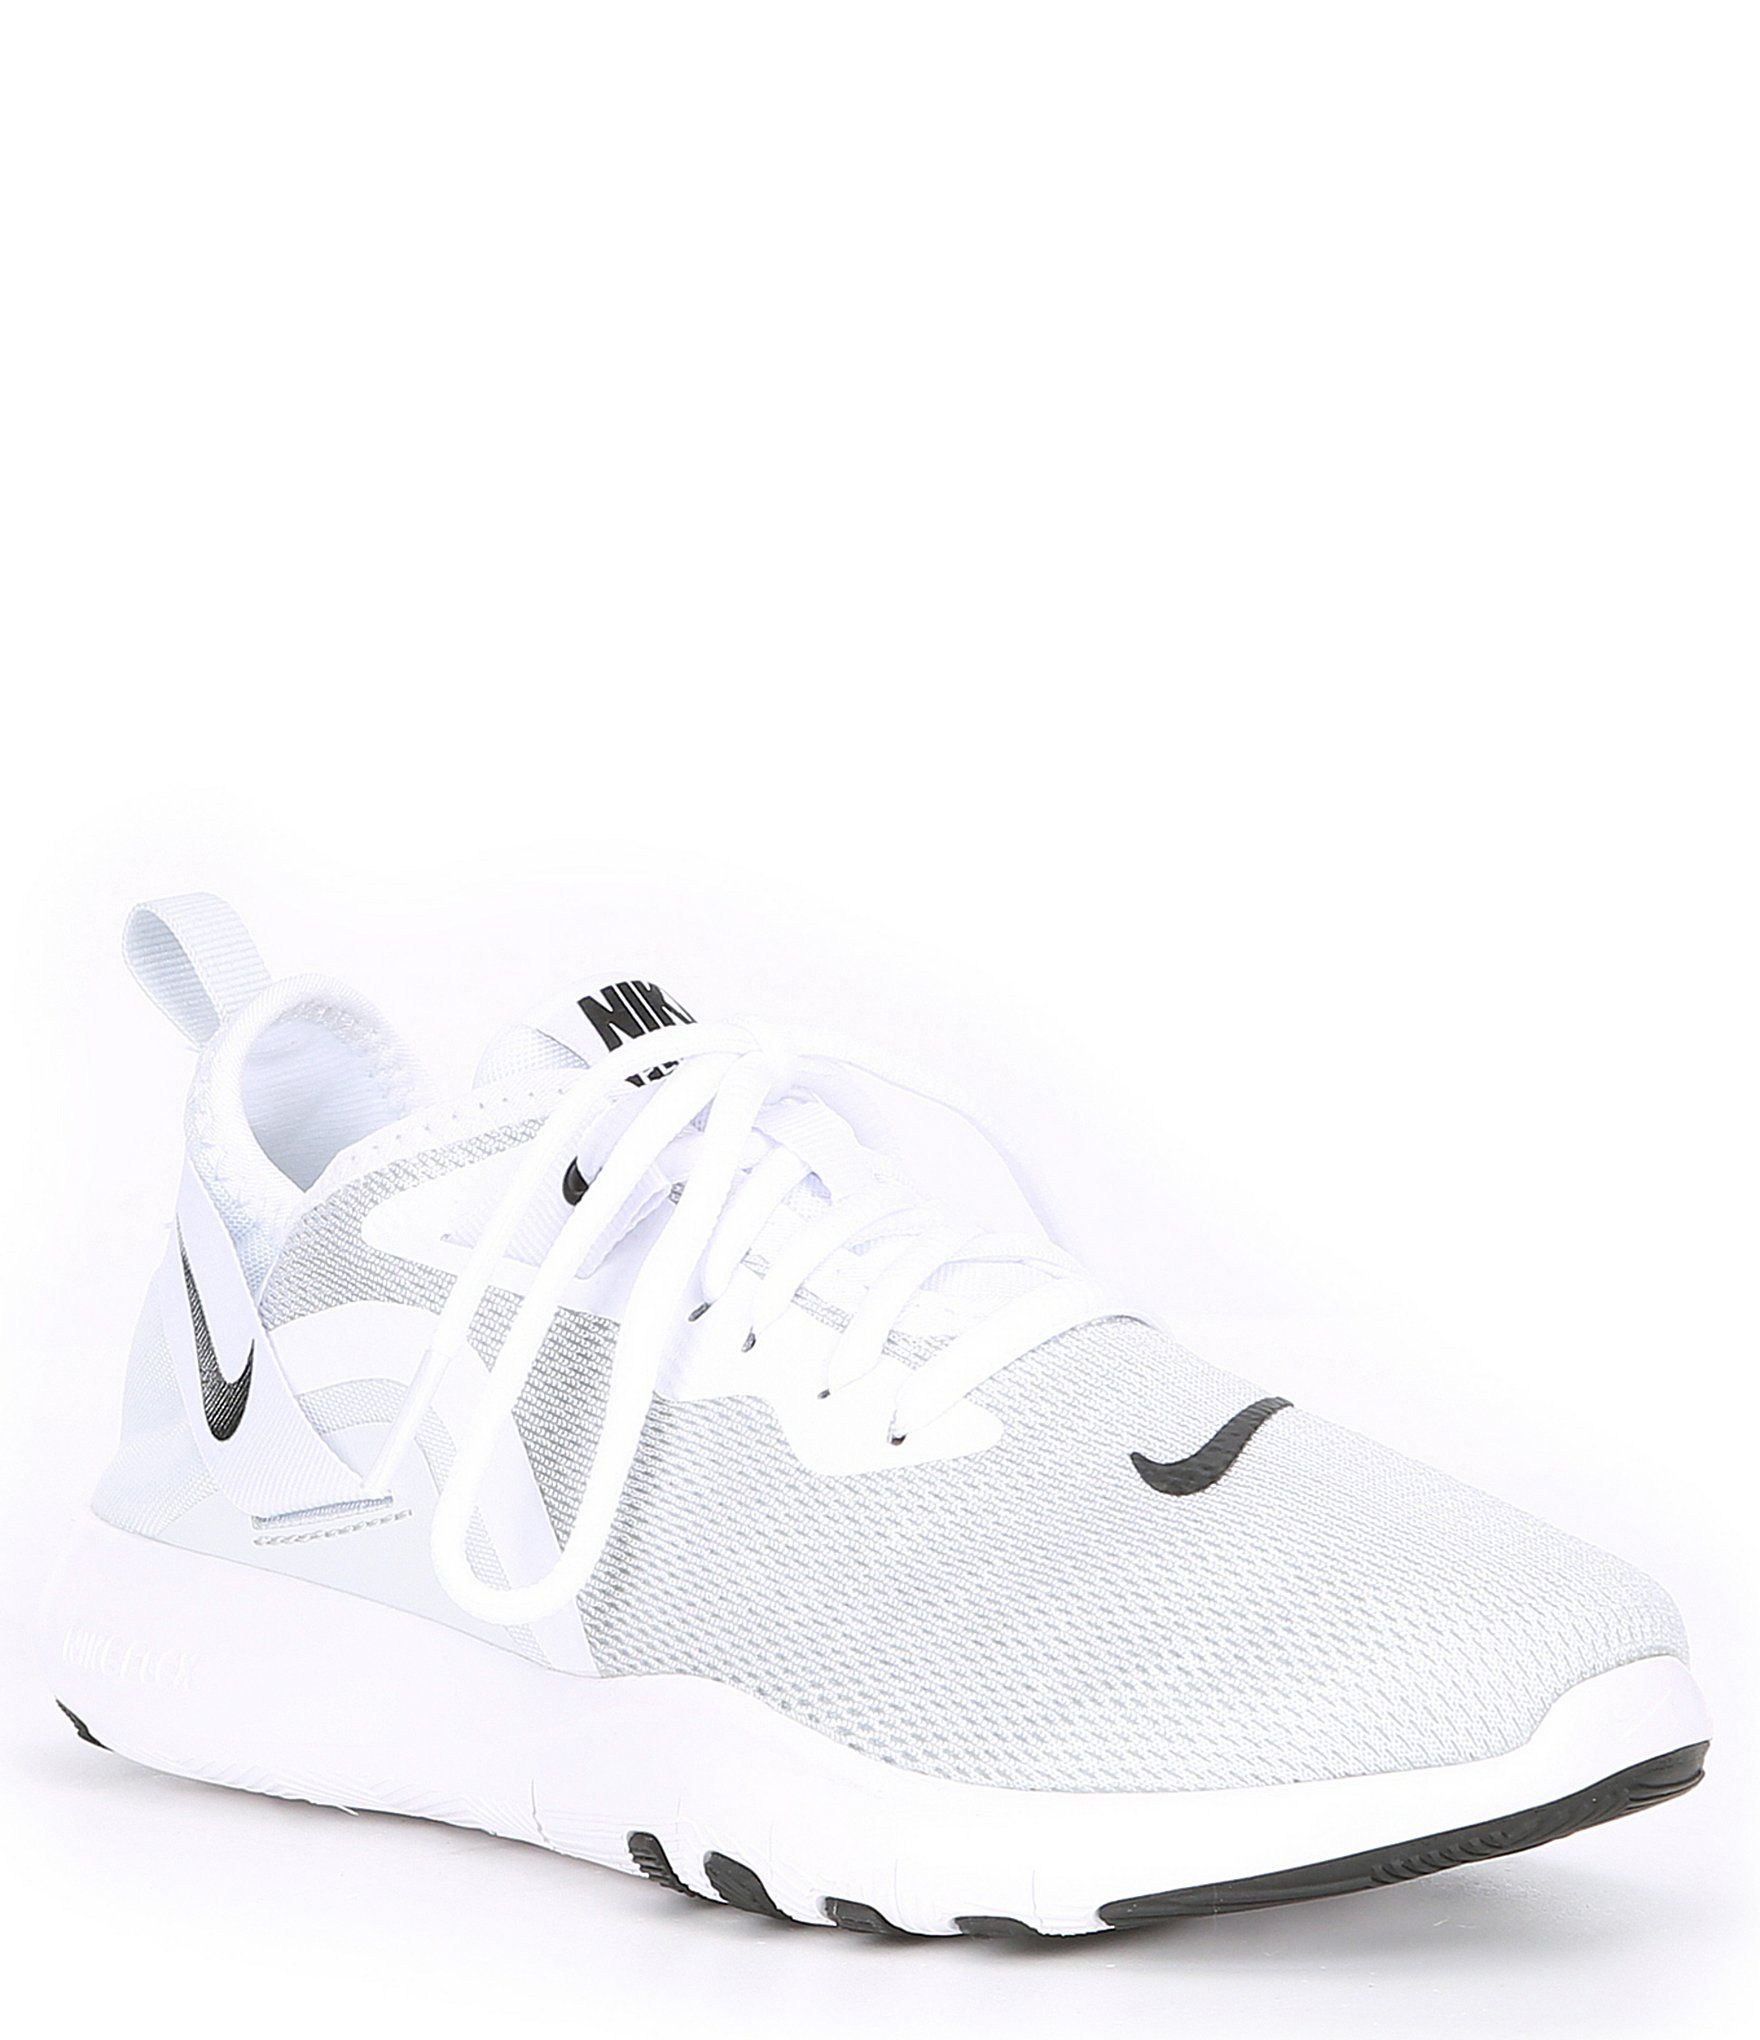 Nike Women S Flex Trainer 9 Training Shoes Dillard S In 2020 Cute Running Shoes White Nike Shoes Training Shoes